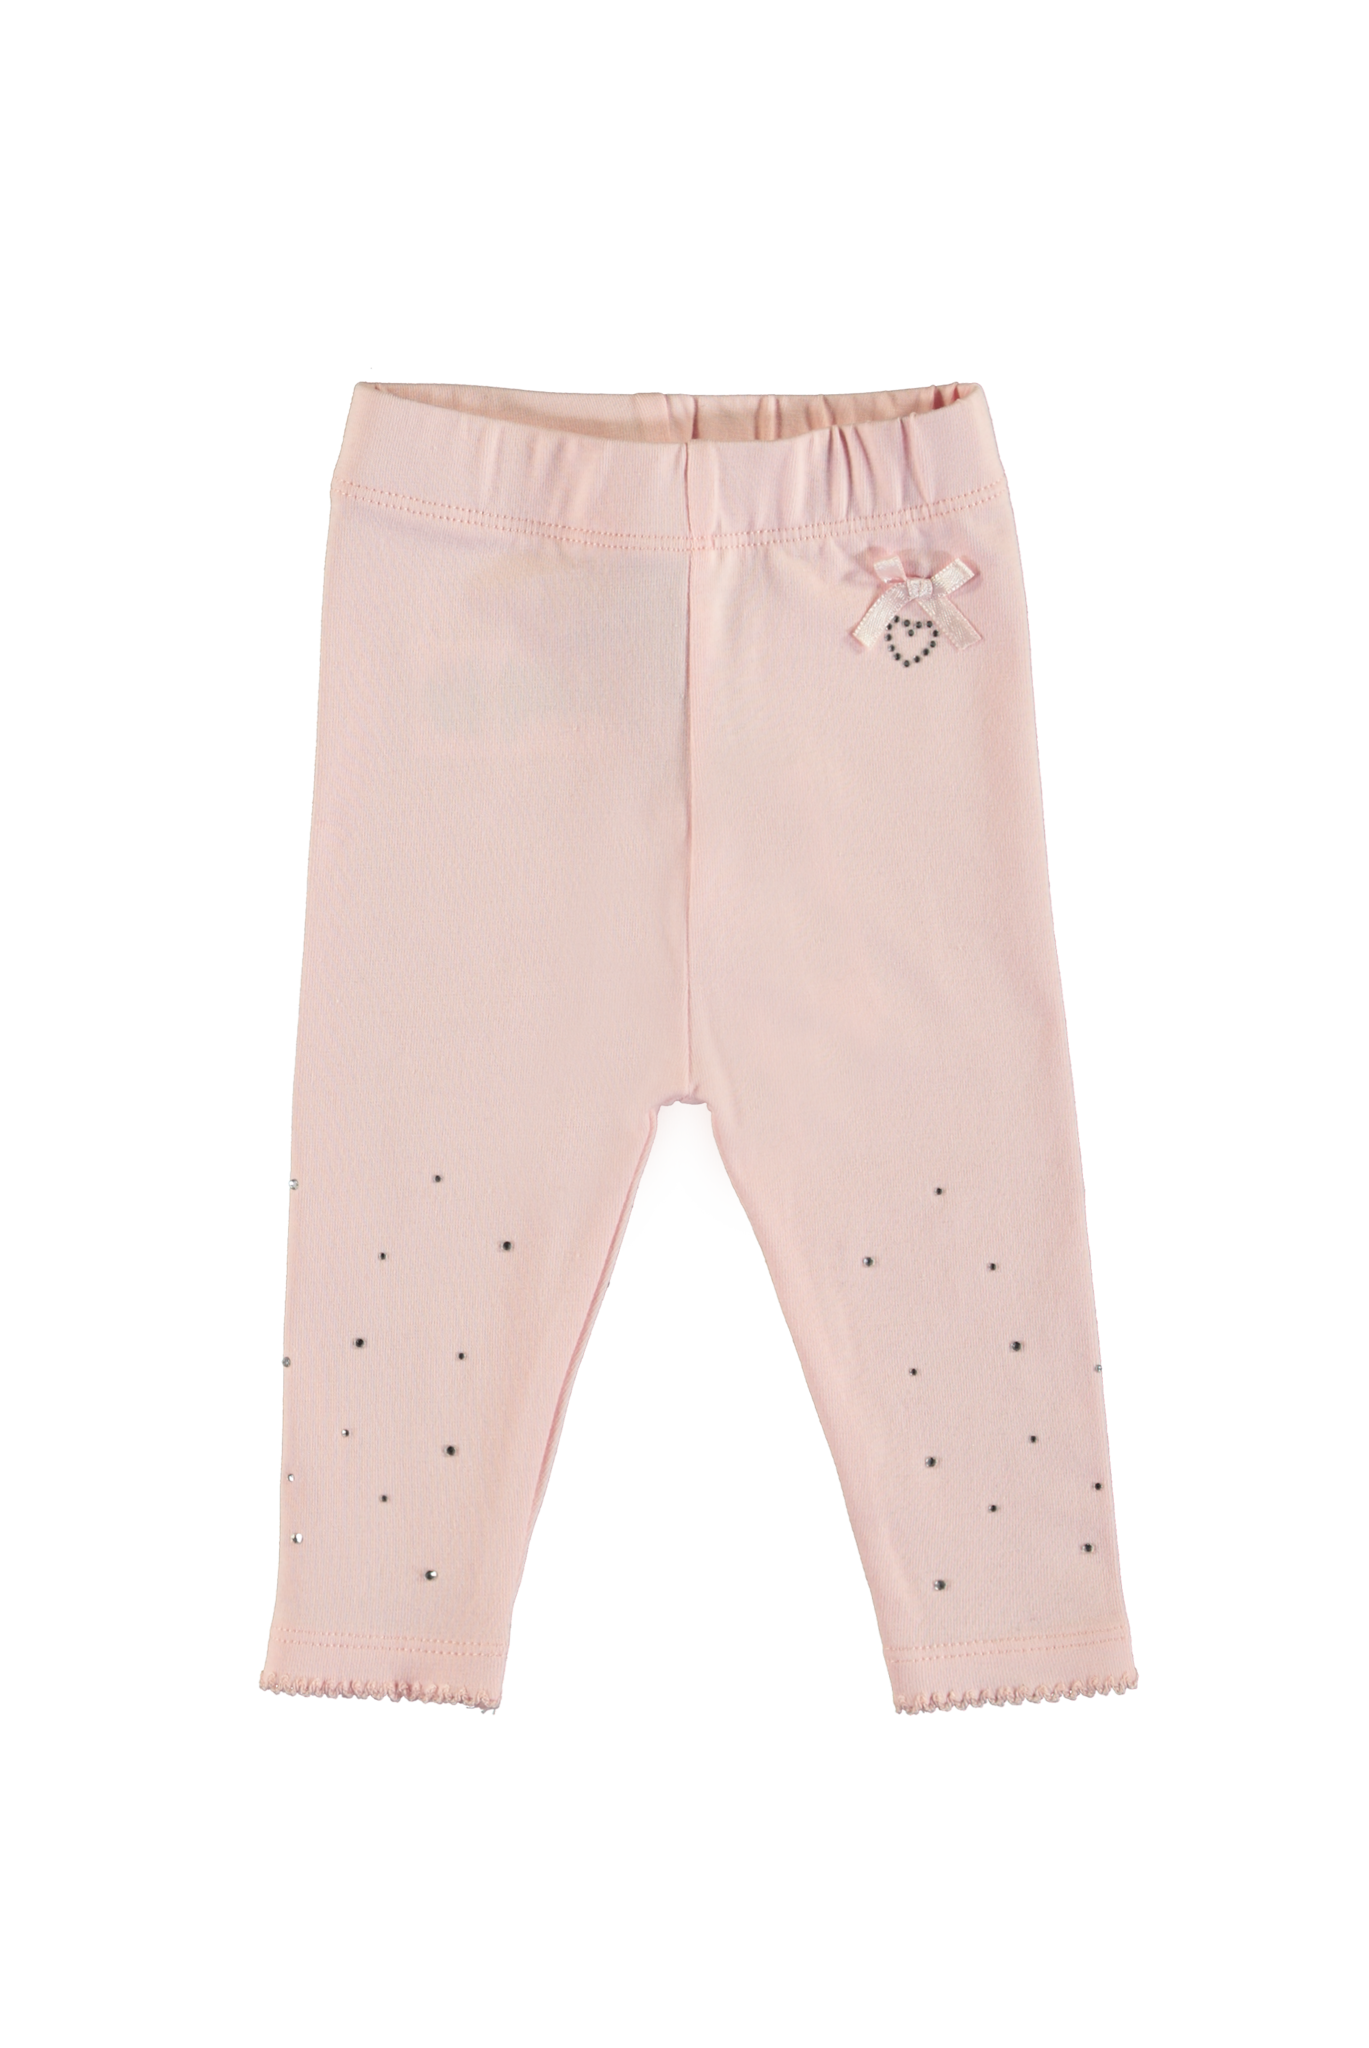 le chic Le Chic Baby Girls Diamonte Leggings - 9593 AW21